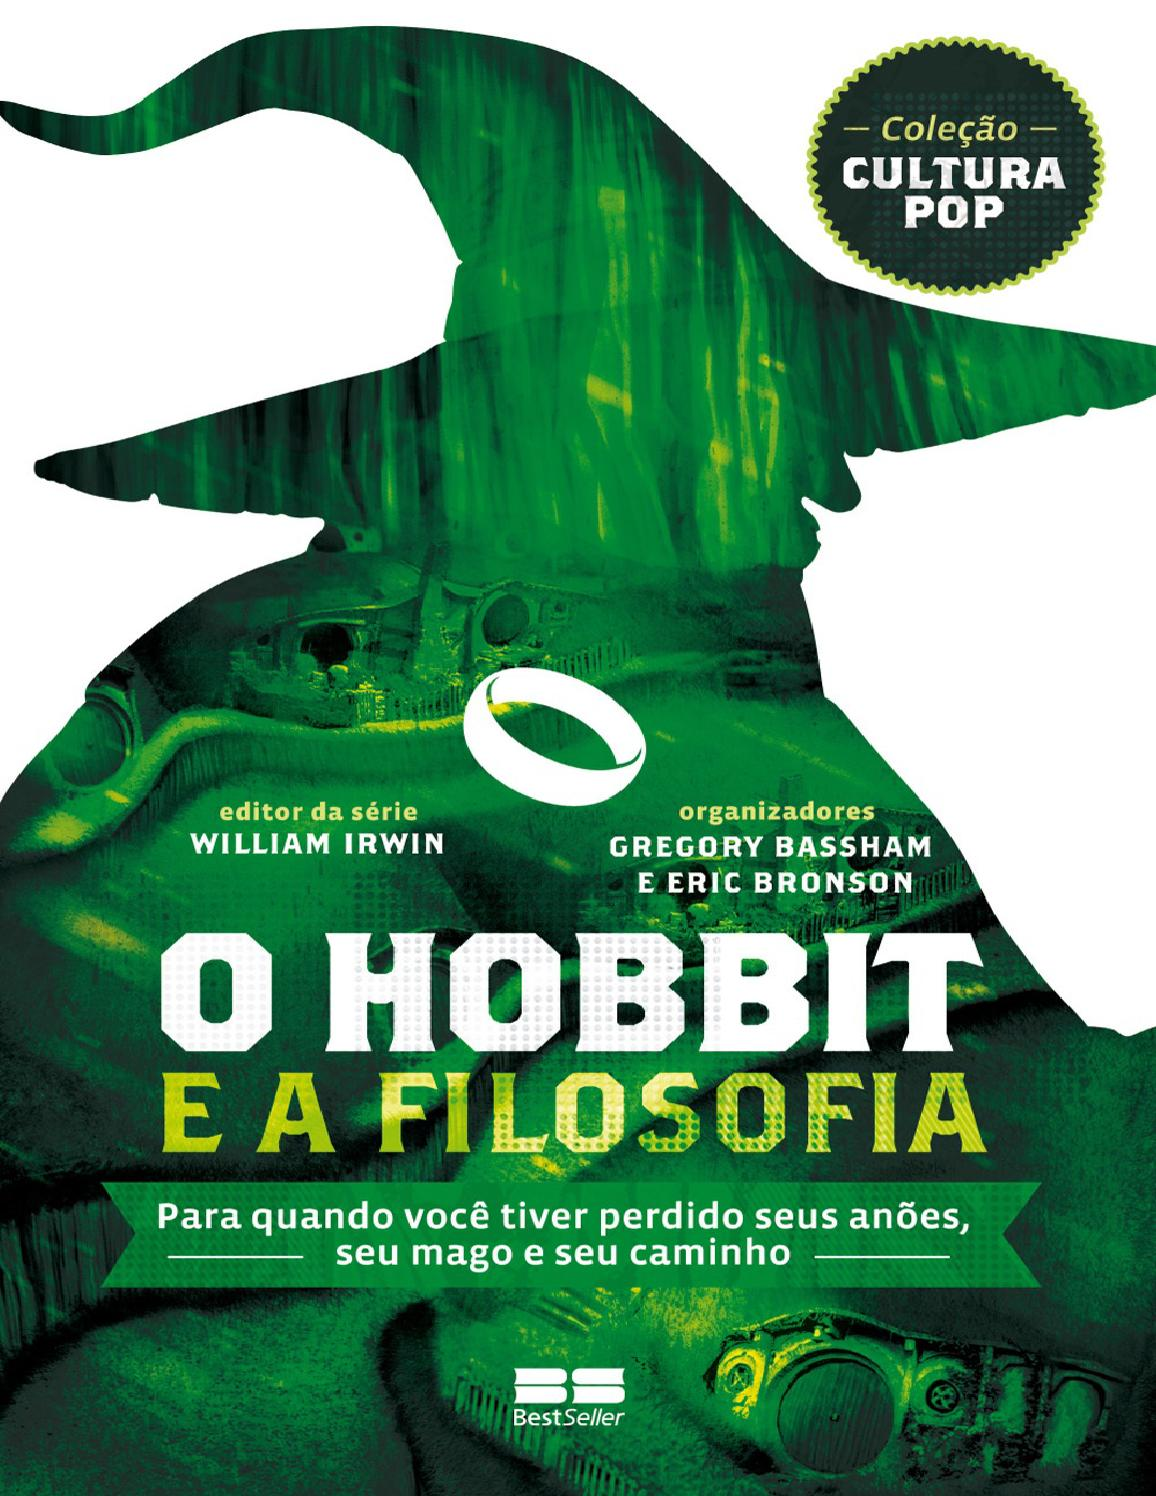 Hobbit e a filosofia william irwin by Marcos Ribeiro - issuu 95090df8ee